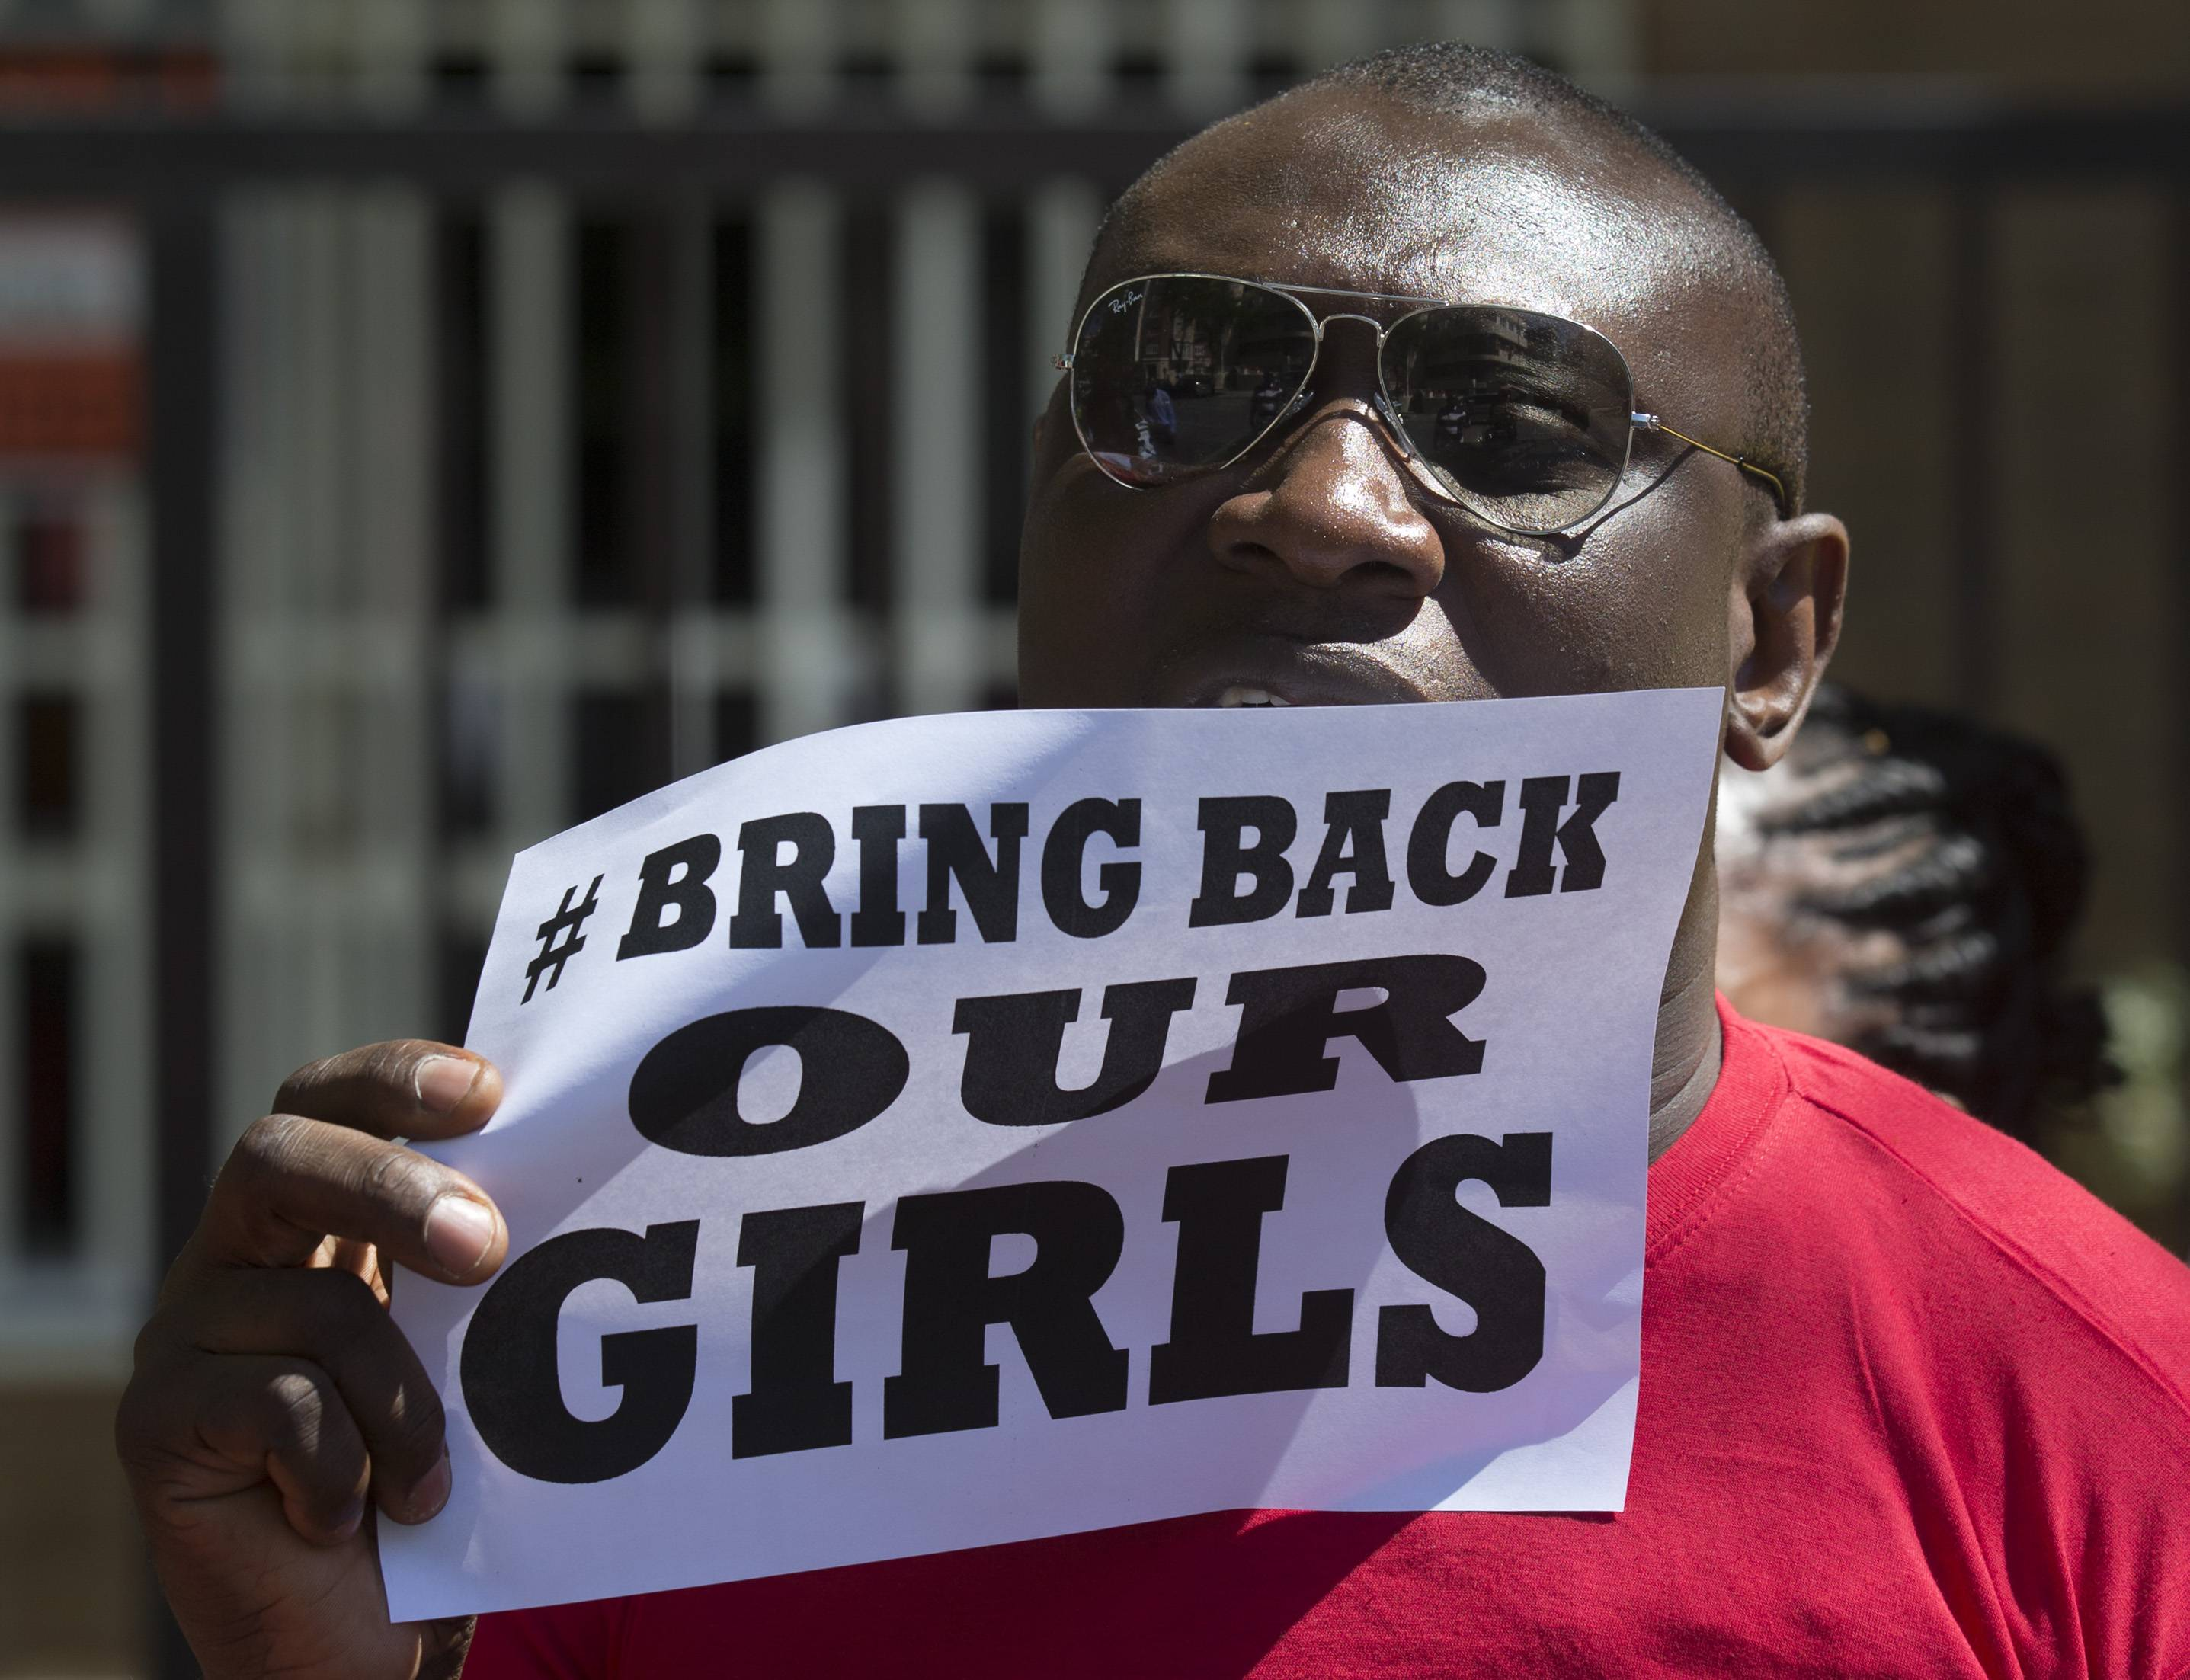 A Nigerian, resident in Spain protests outside the Nigerian embassy in Madrid, Spain, Friday, May 16, 2014 in support of the kidnapped school girls in Abuja, Nigeria.